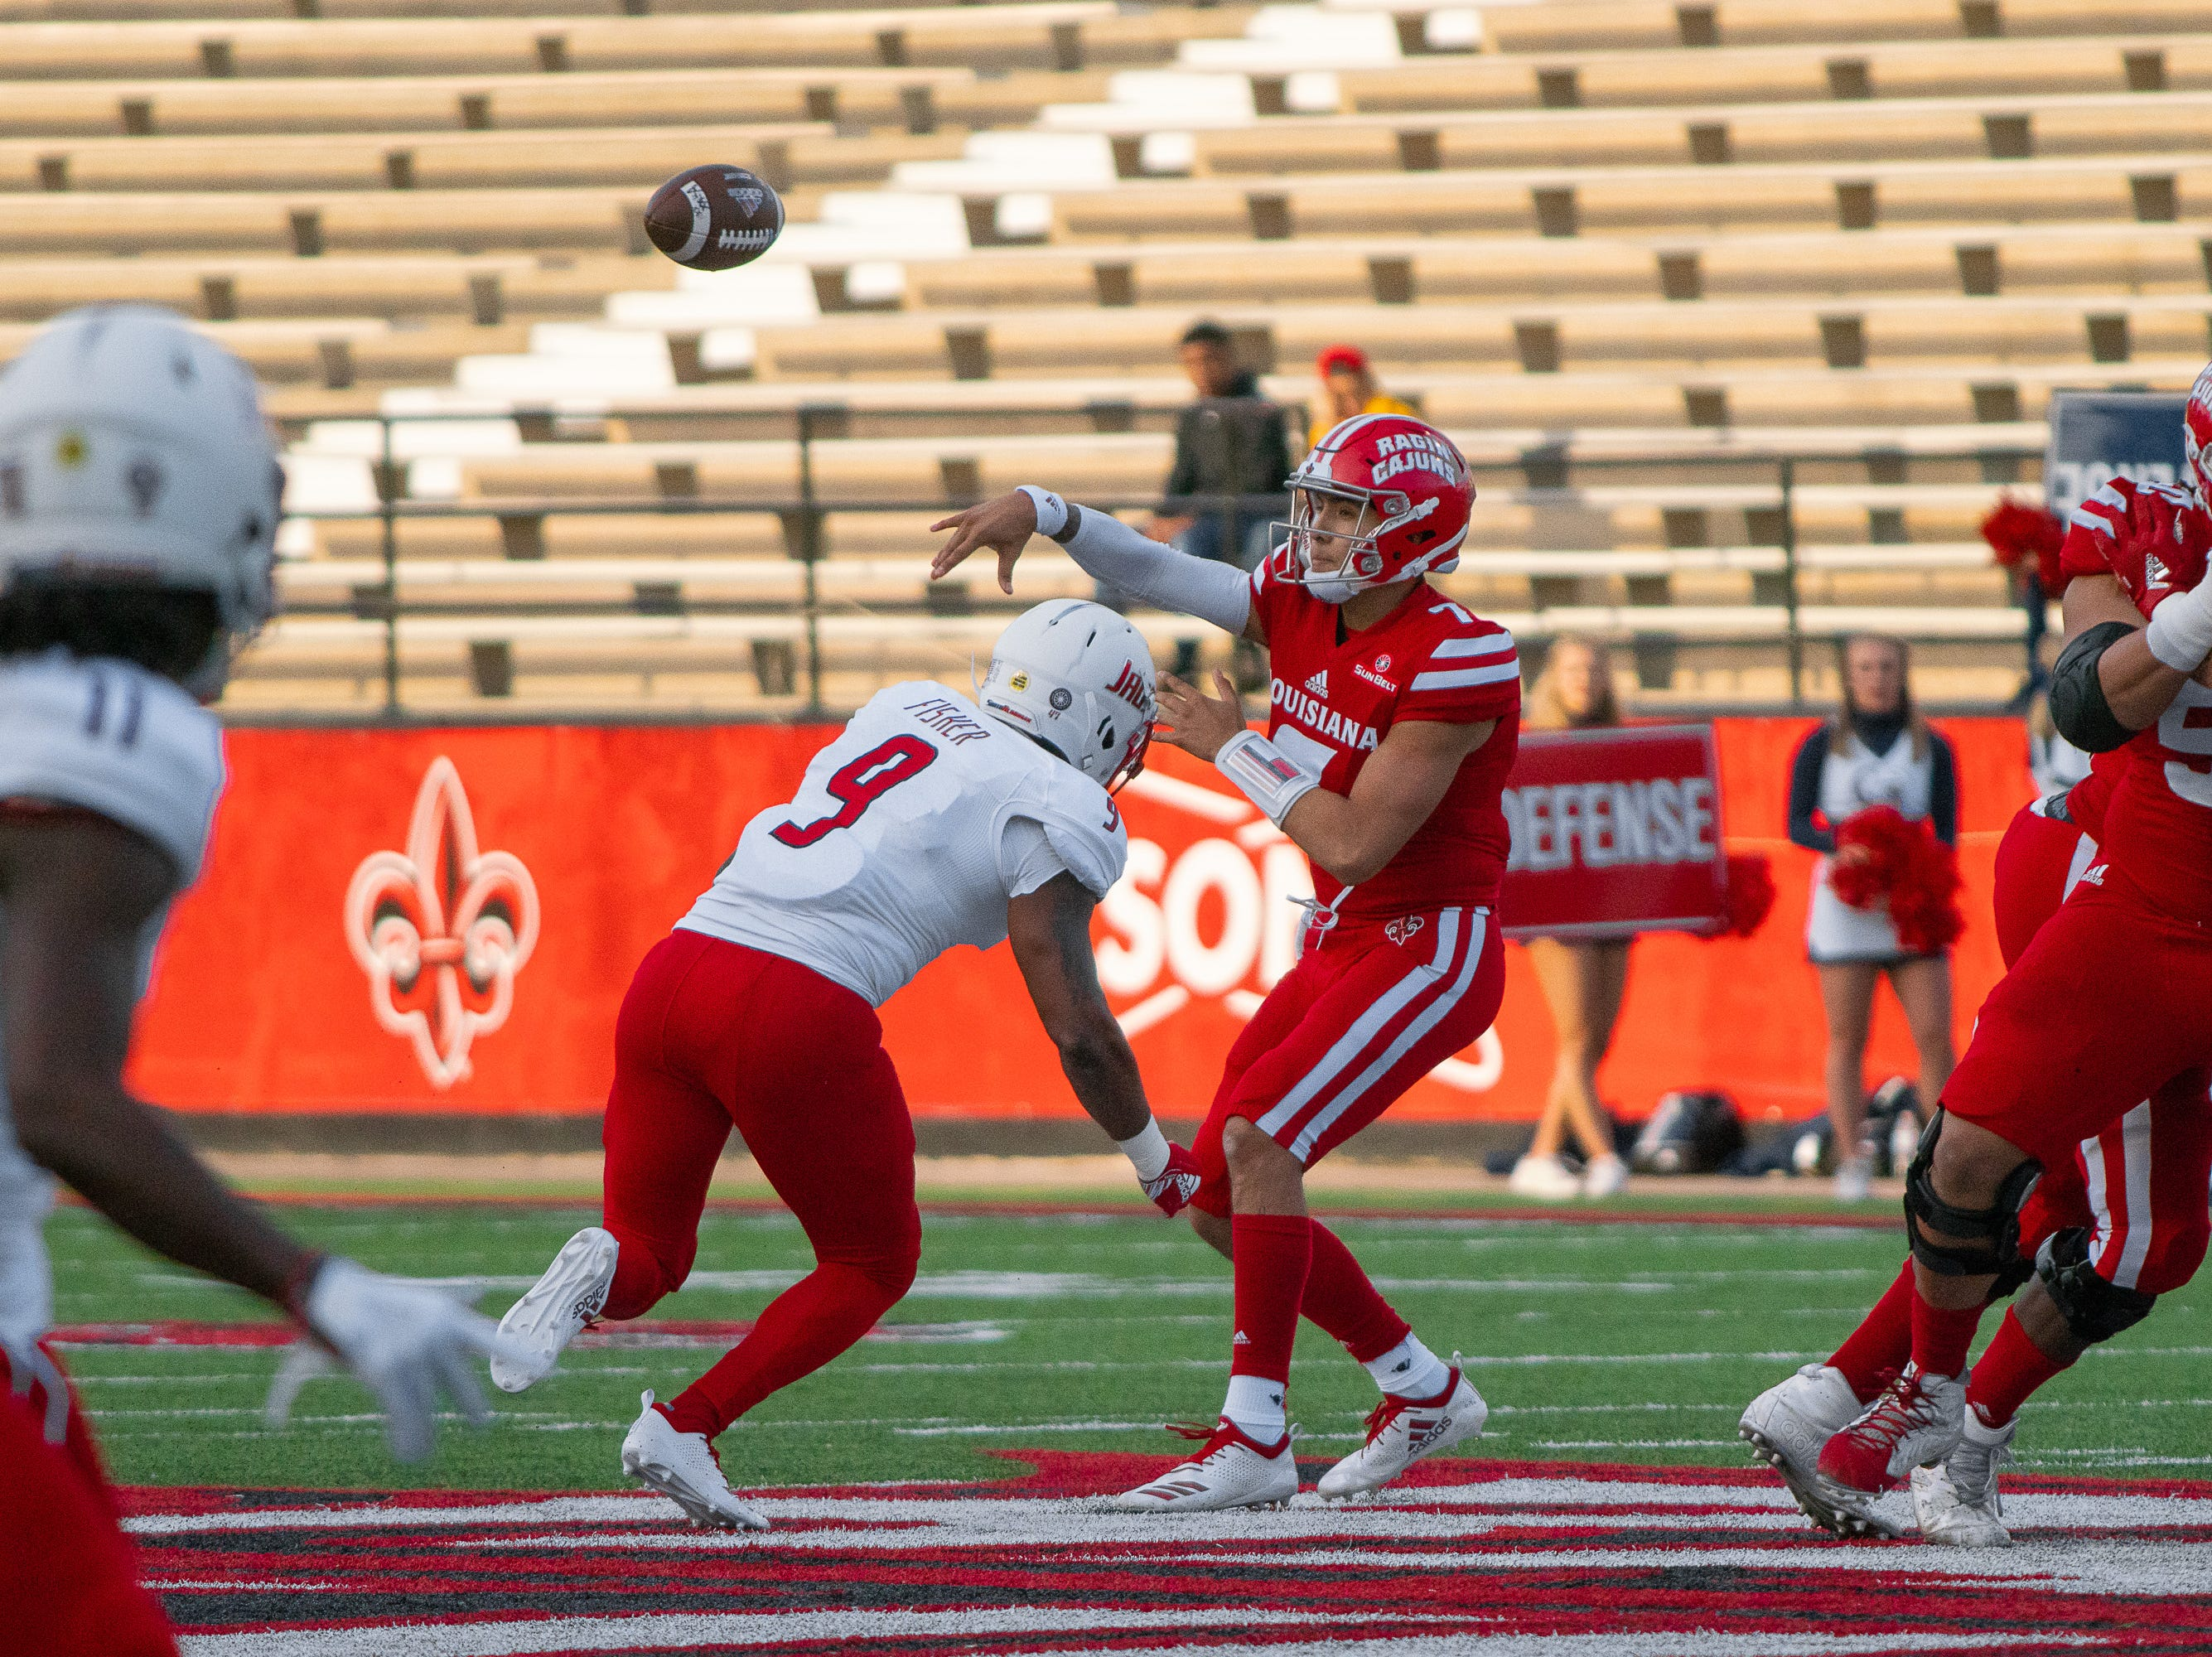 UL's senior quarterback throws a pass towards the sideline as the Ragin' Cajuns play against the South Alabama Jaguars at Cajun Field on November 17, 2018.